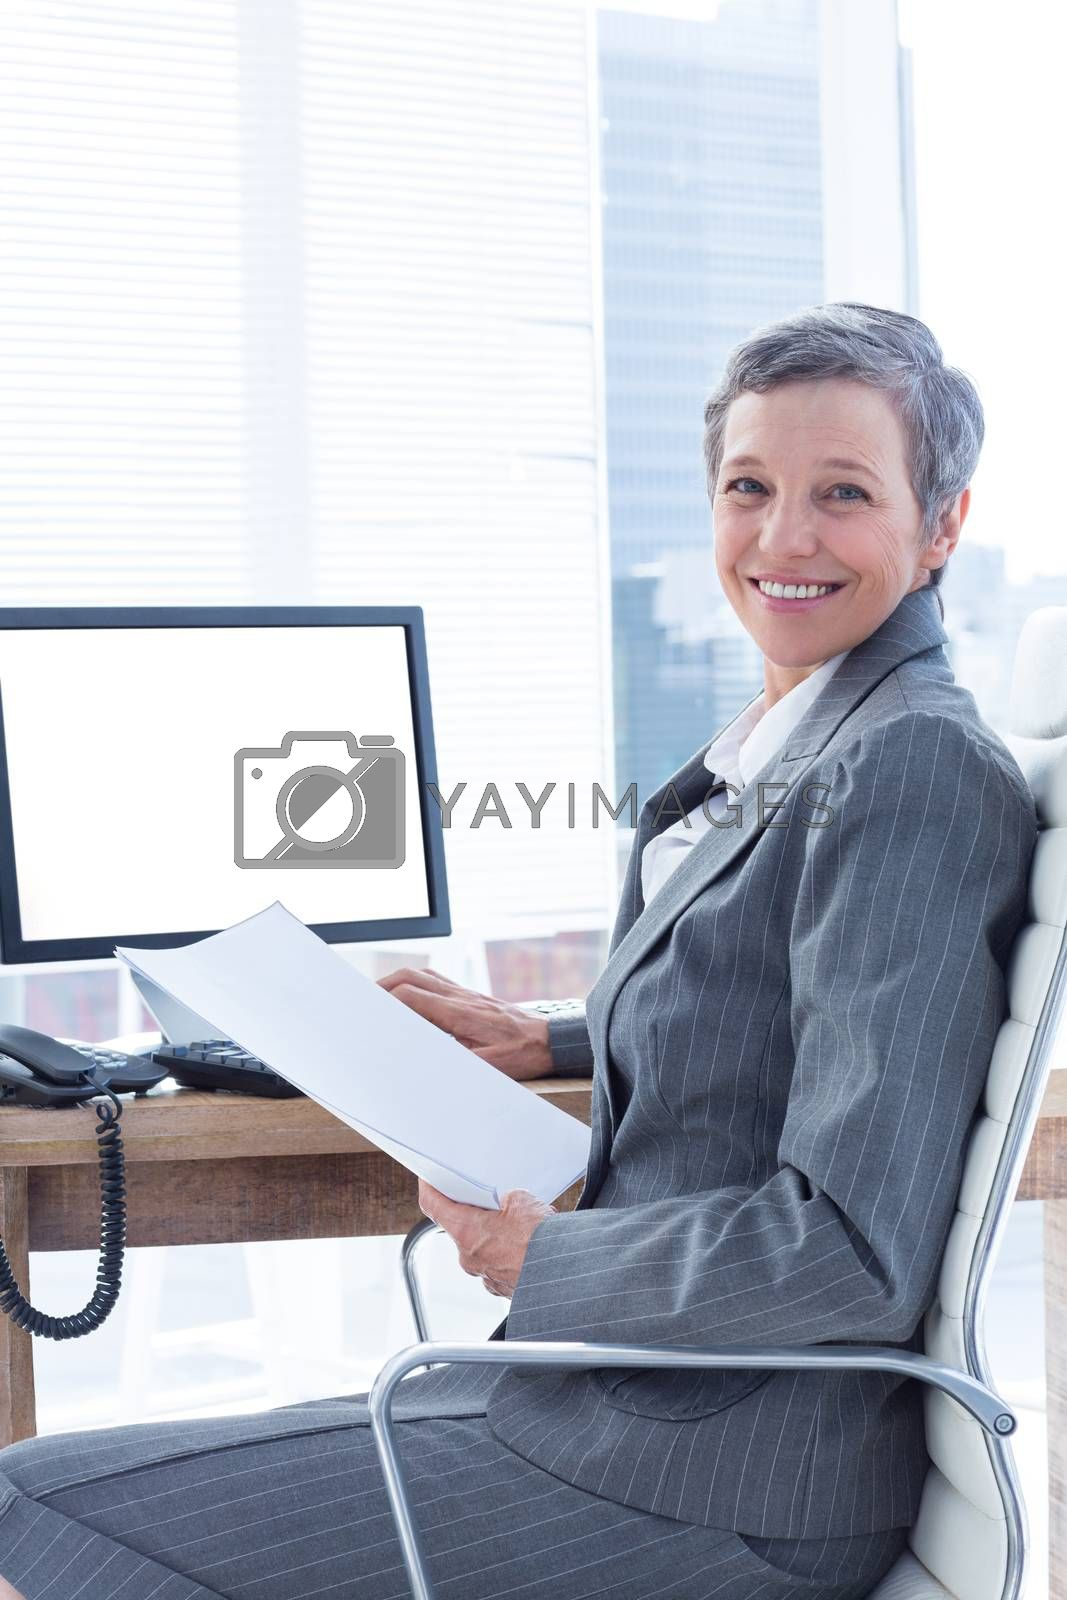 Royalty free image of Smiling businesswoman using computer  by Wavebreakmedia